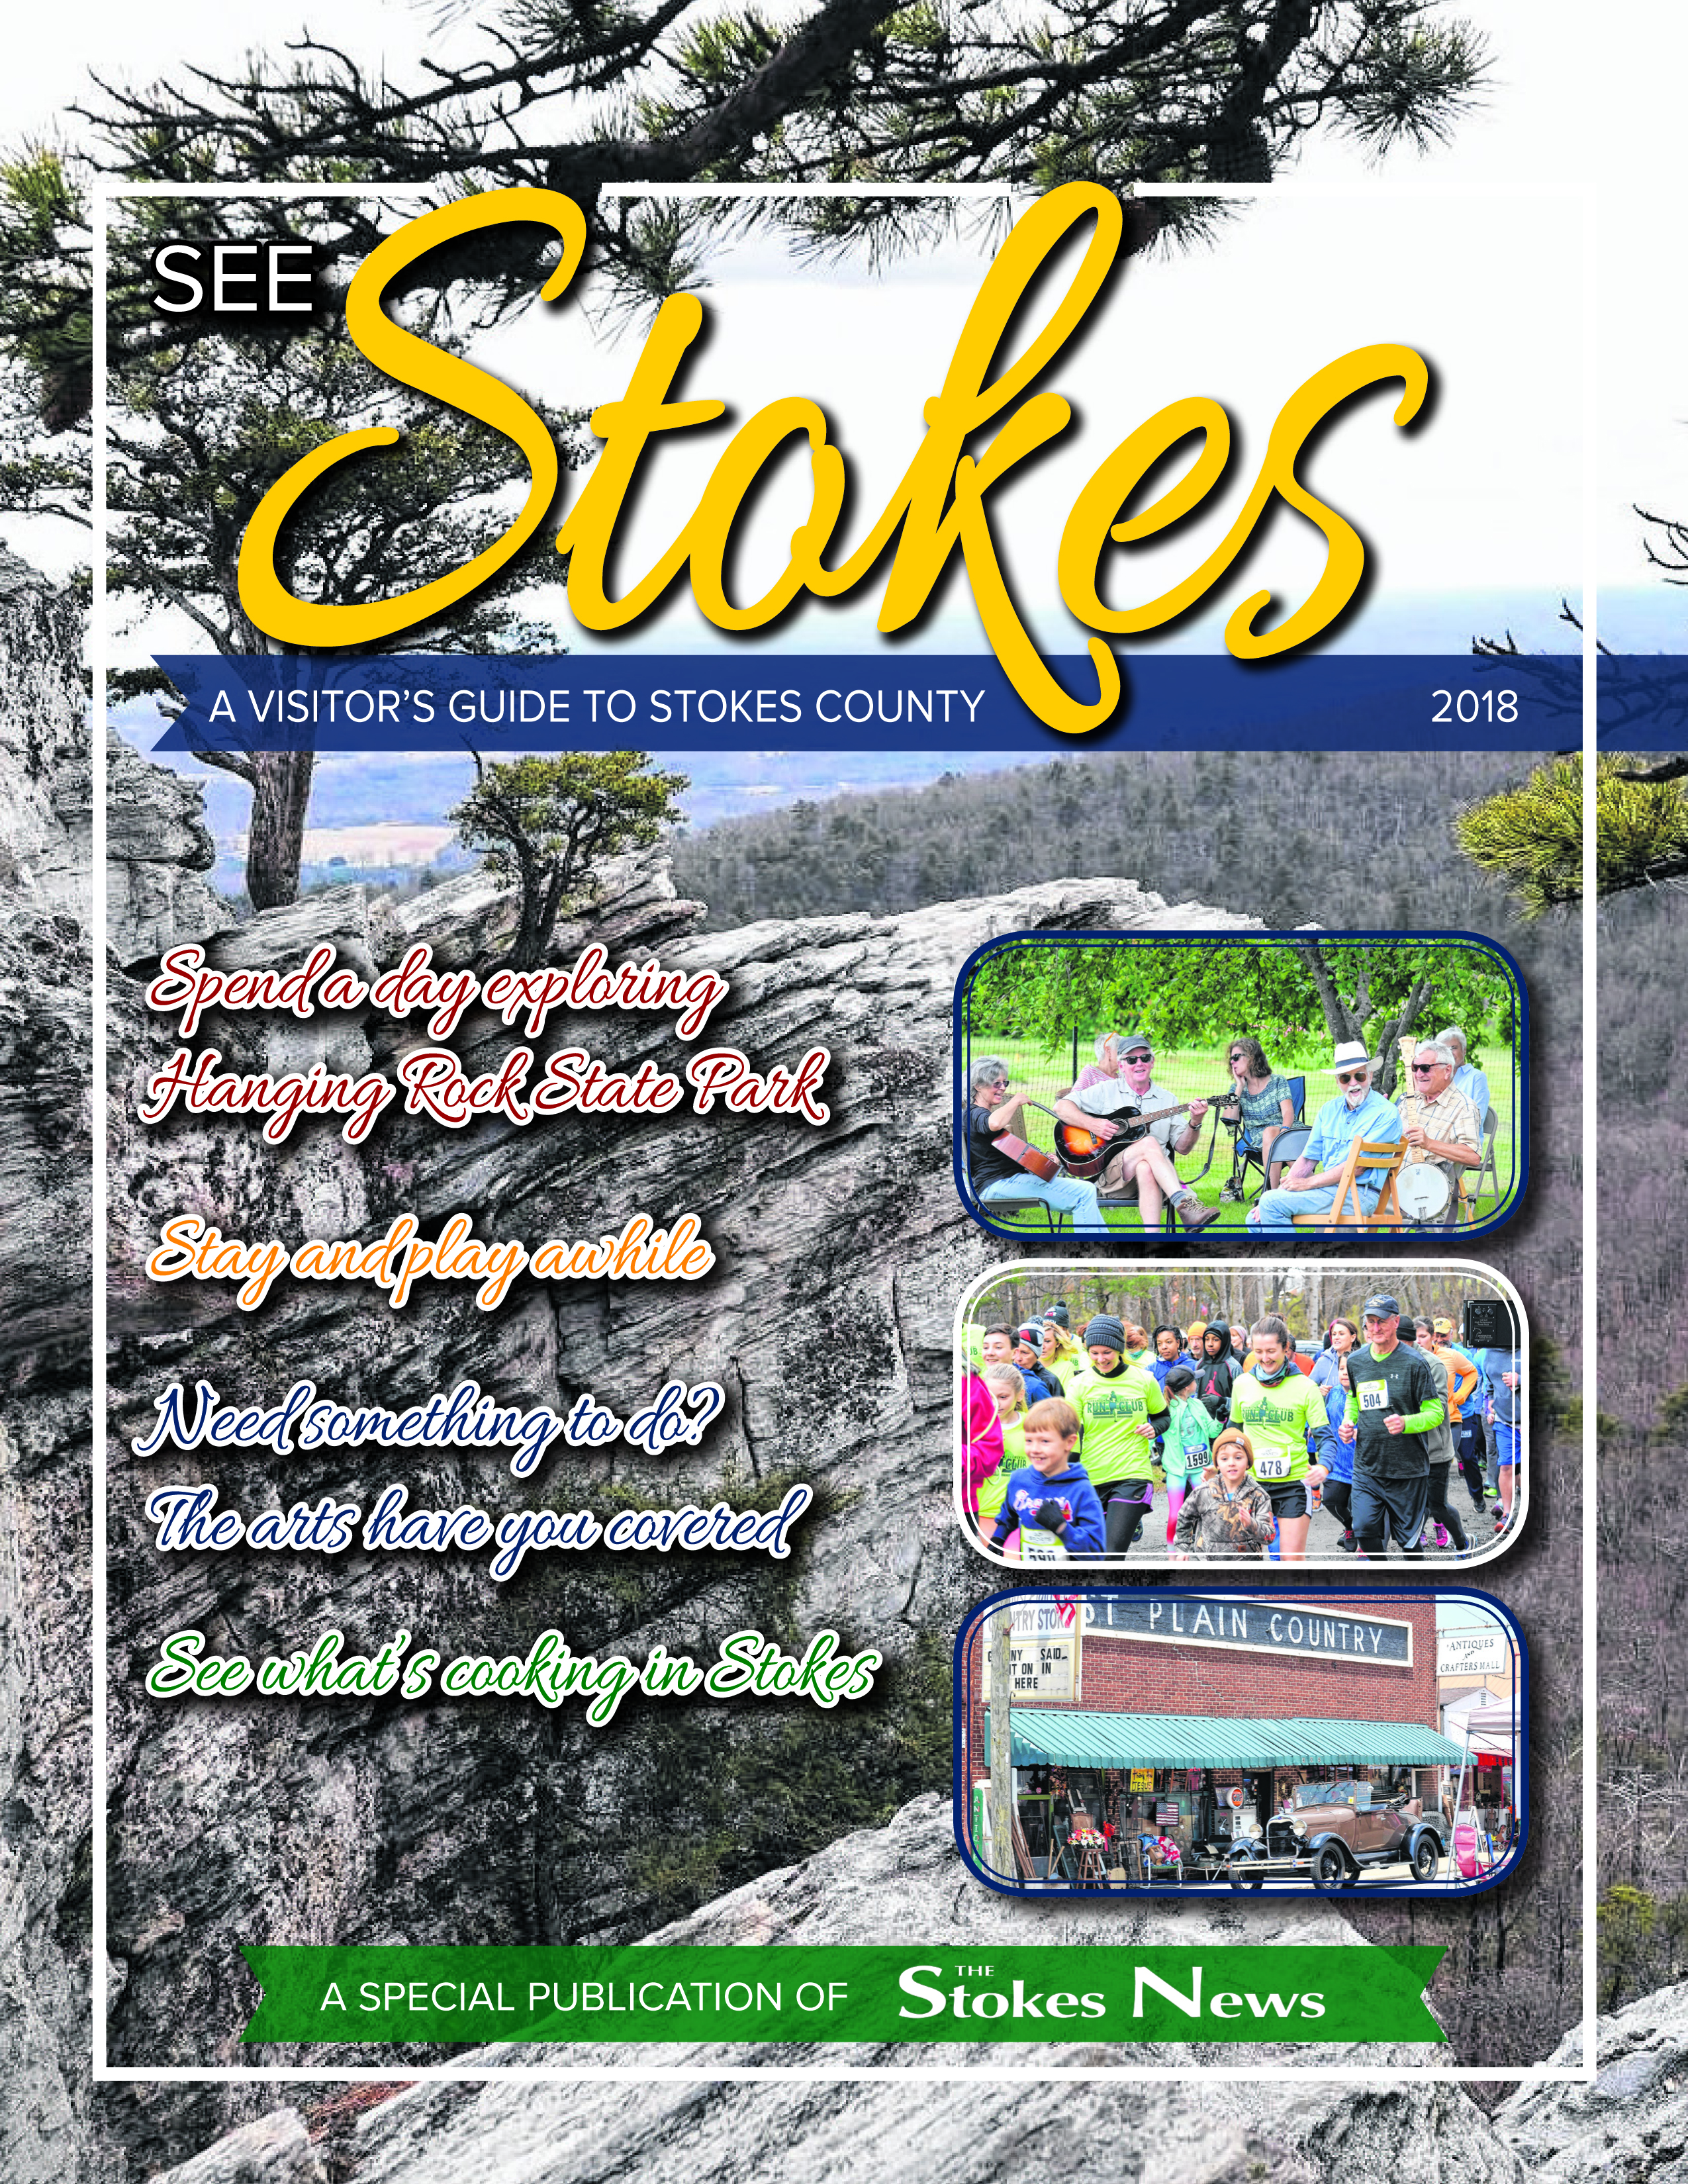 See Stokes 2018